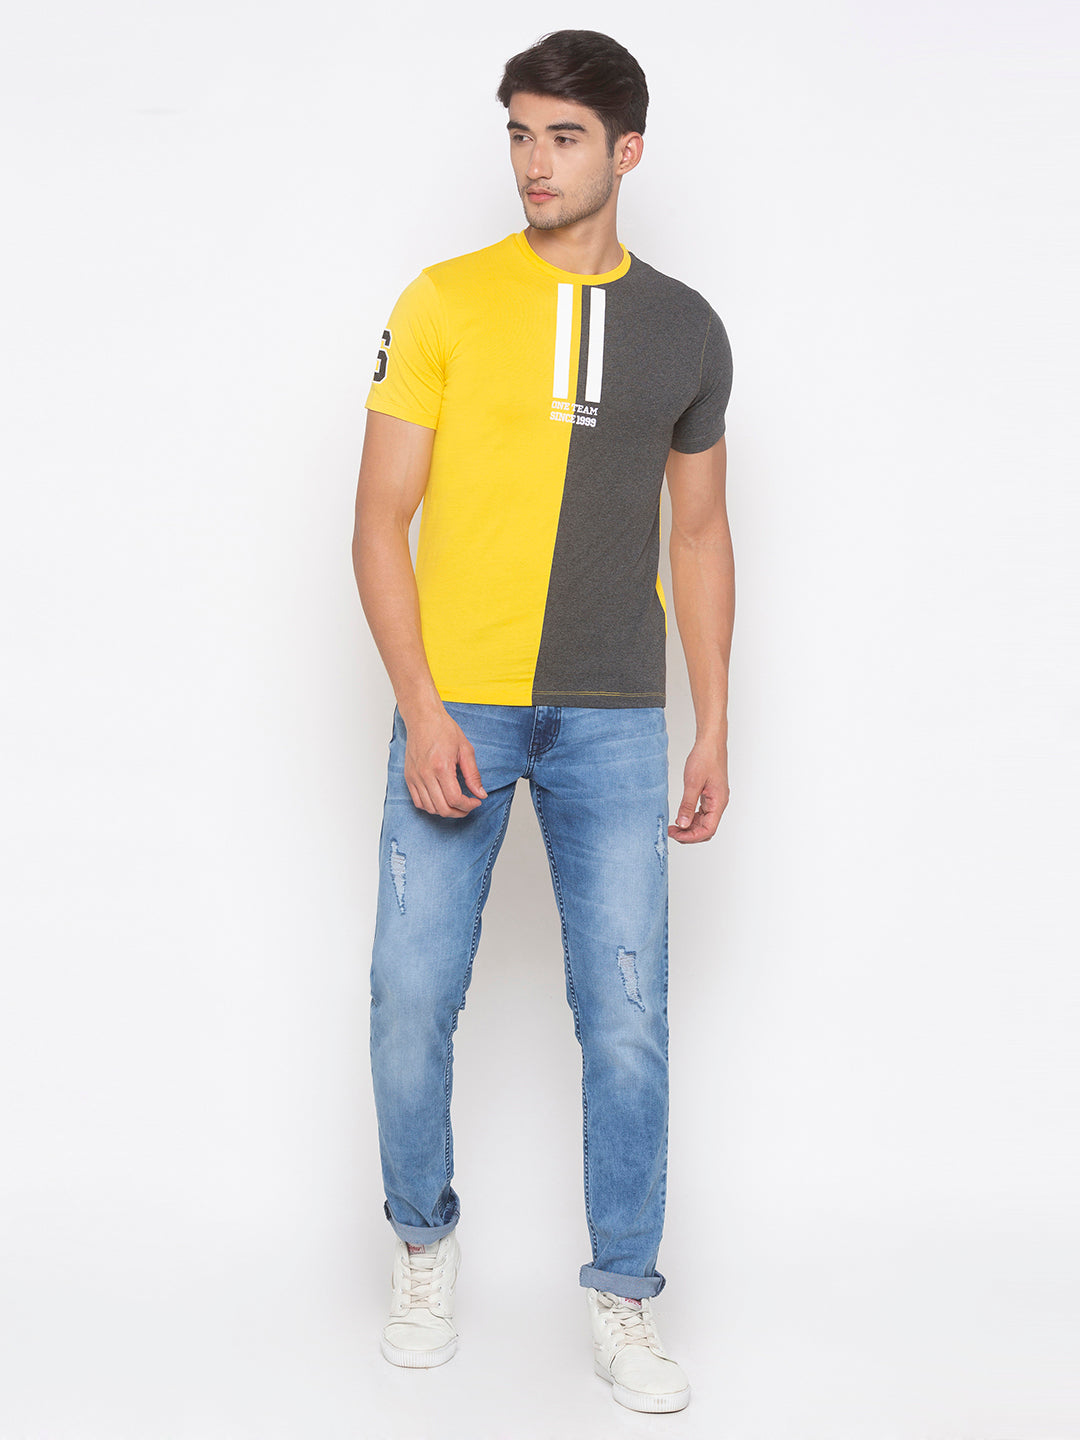 Globus Yellow & Grey Color Block T-Shirt-4